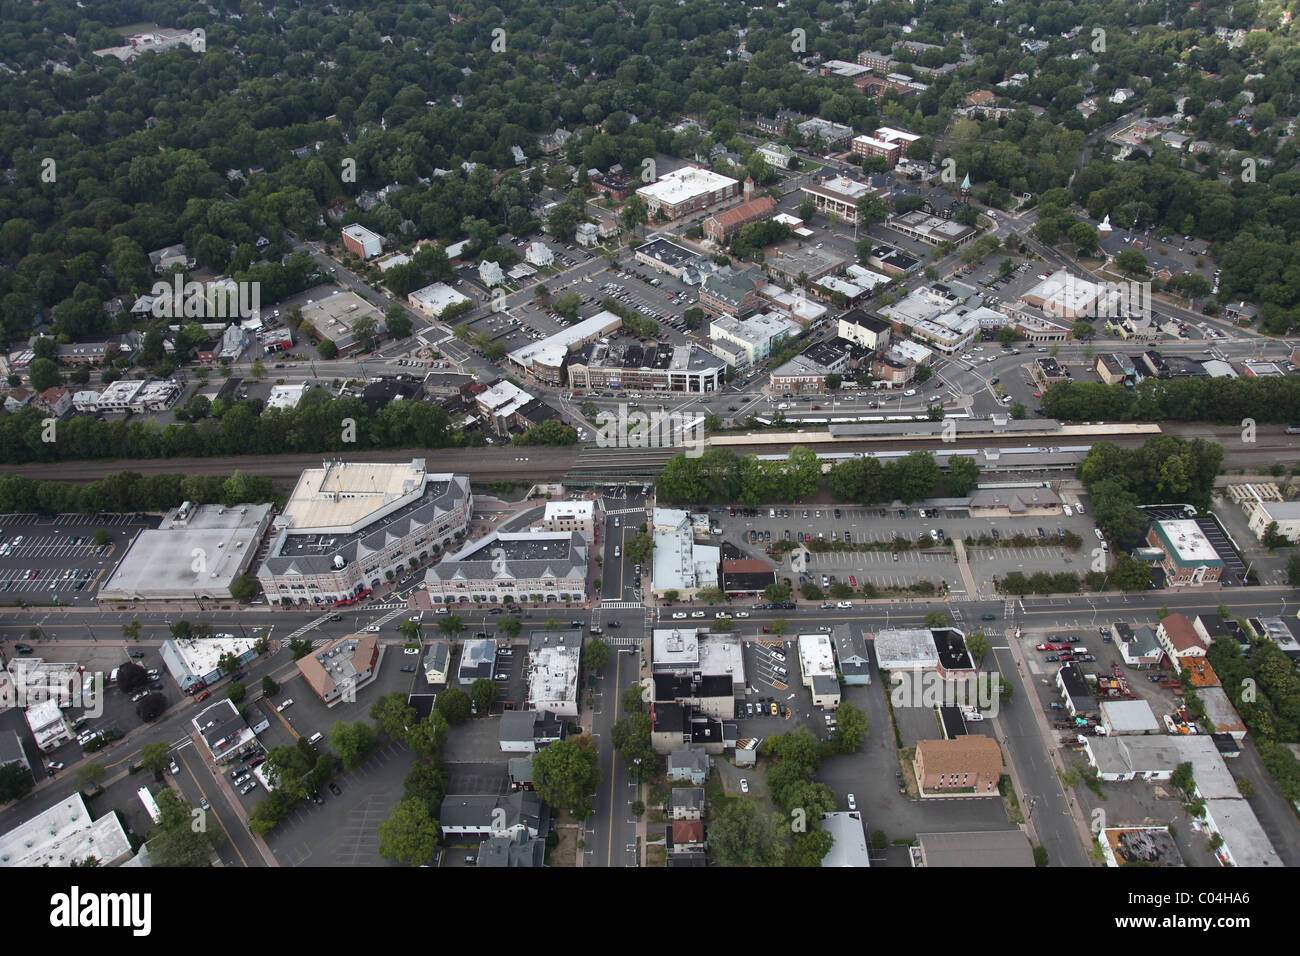 New jersey union county cranford - Aerial View Of Cranford New Jersey Union County Usa America